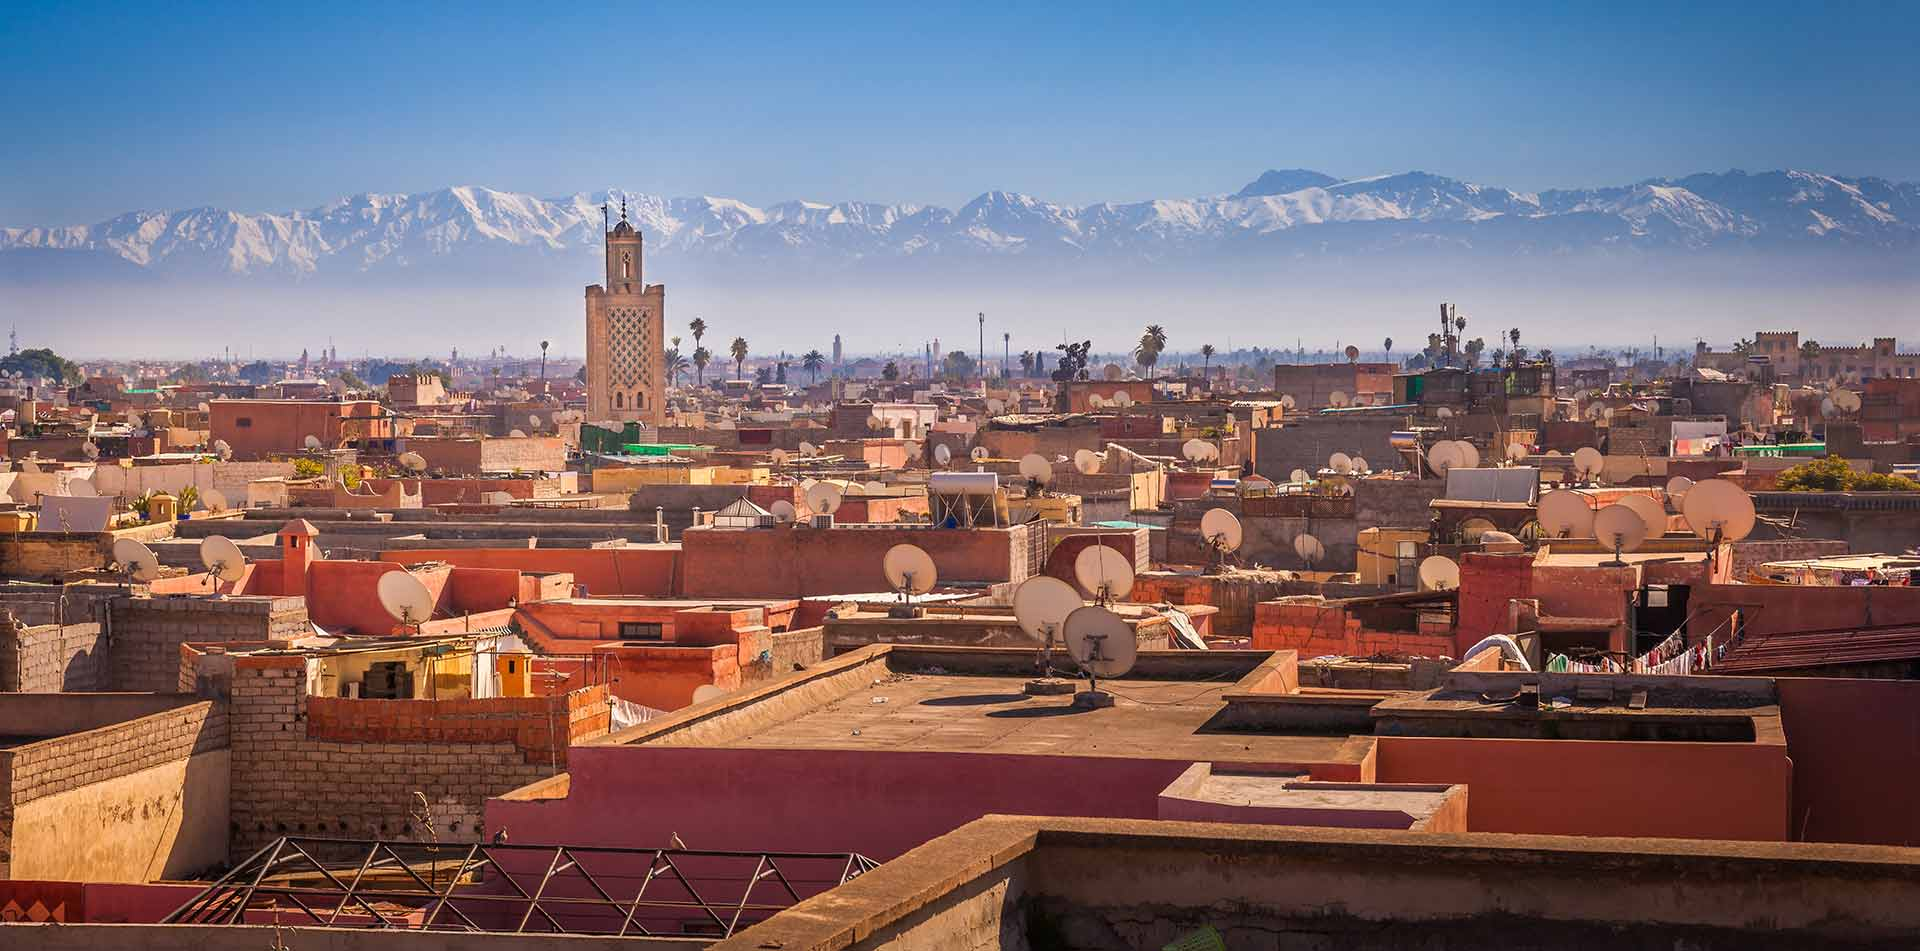 Panoramic of Marrakesh, Morocco